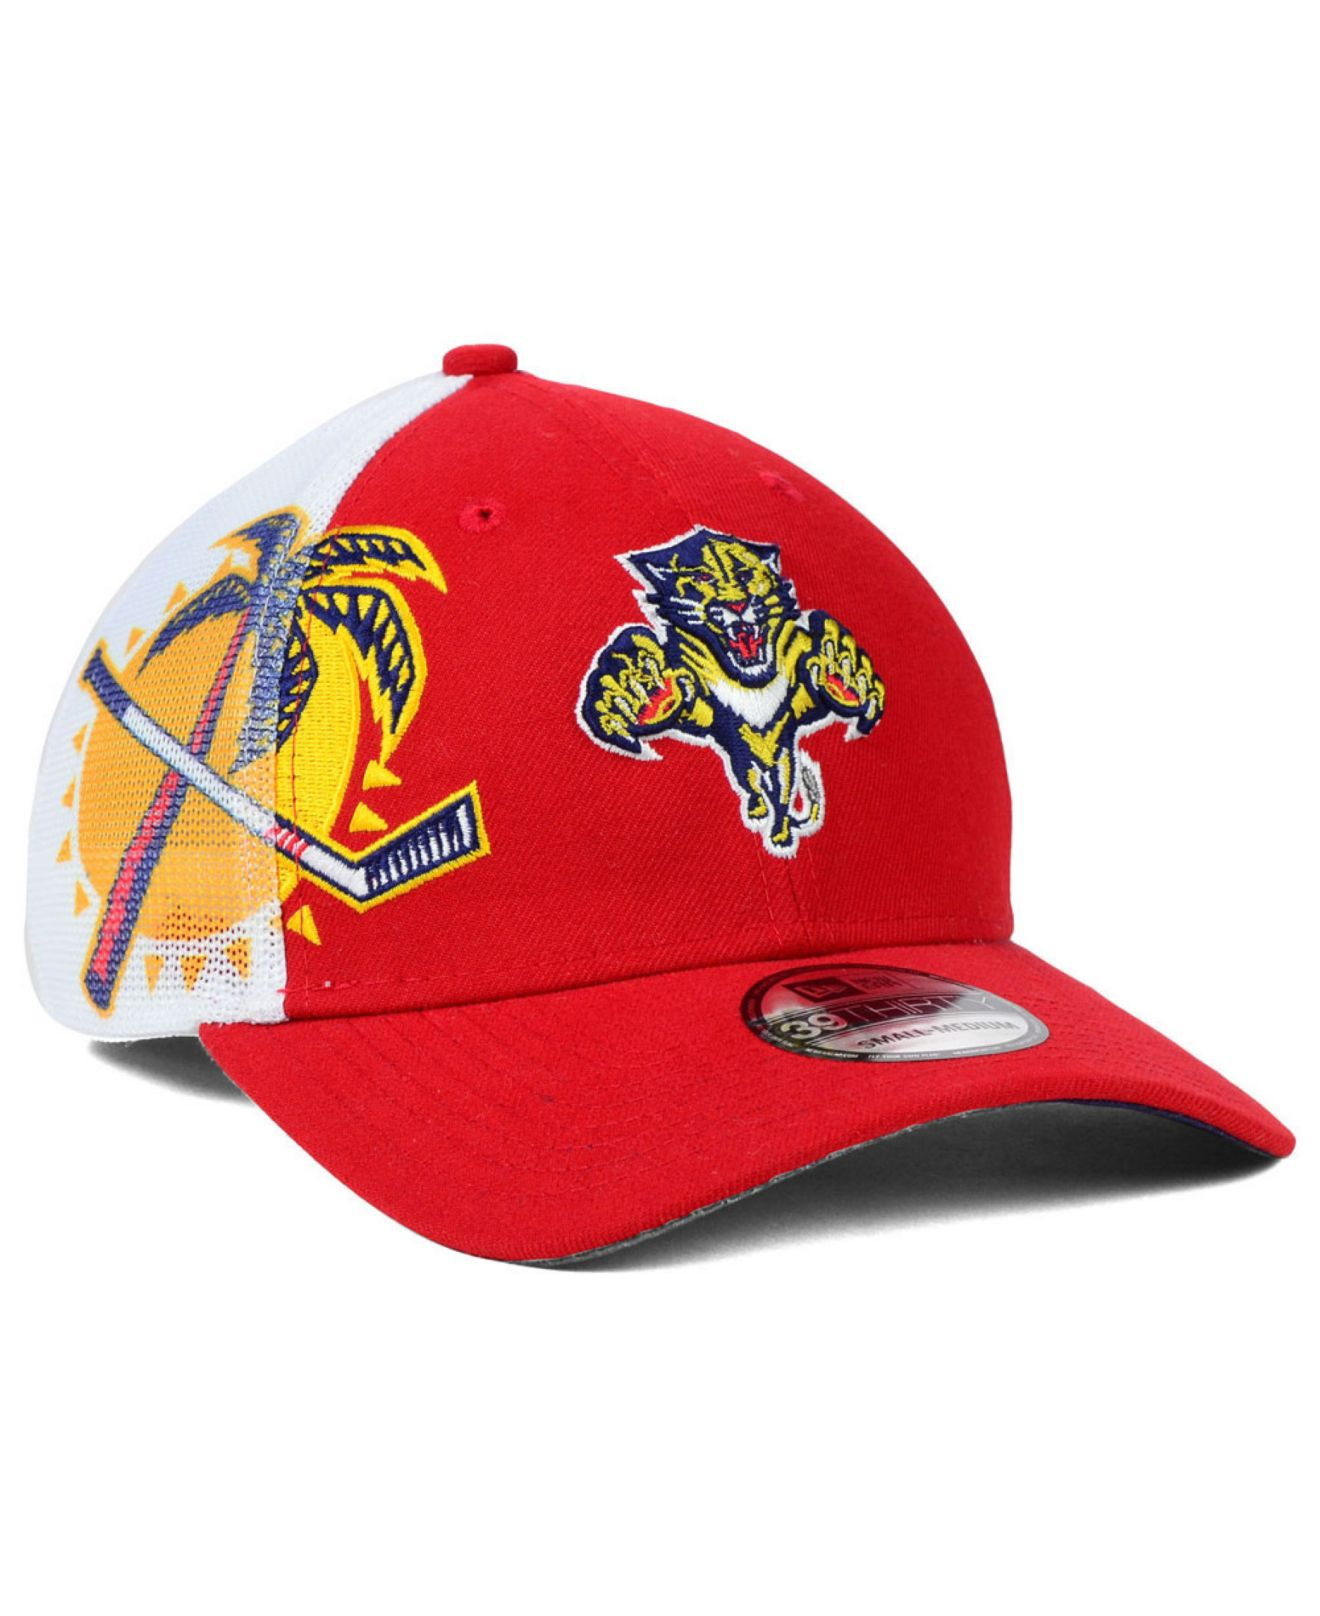 new product 86407 6076d ... wholesale lyst ktz florida panthers flex 39thirty cap in red for men  4c484 2ef09